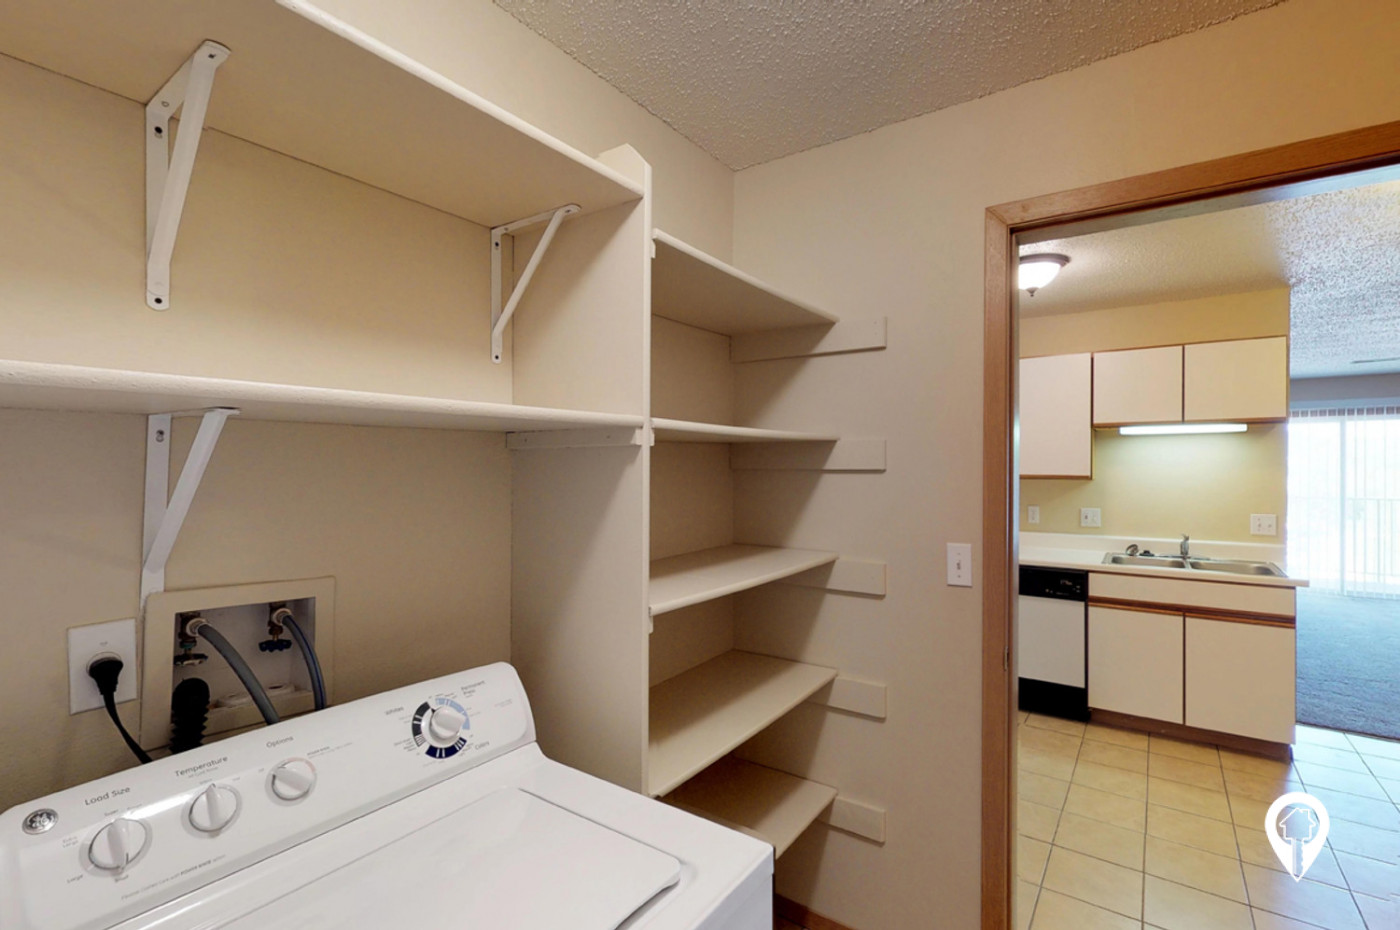 Alps-Park-Apartments-In-home-Washers-Dryers